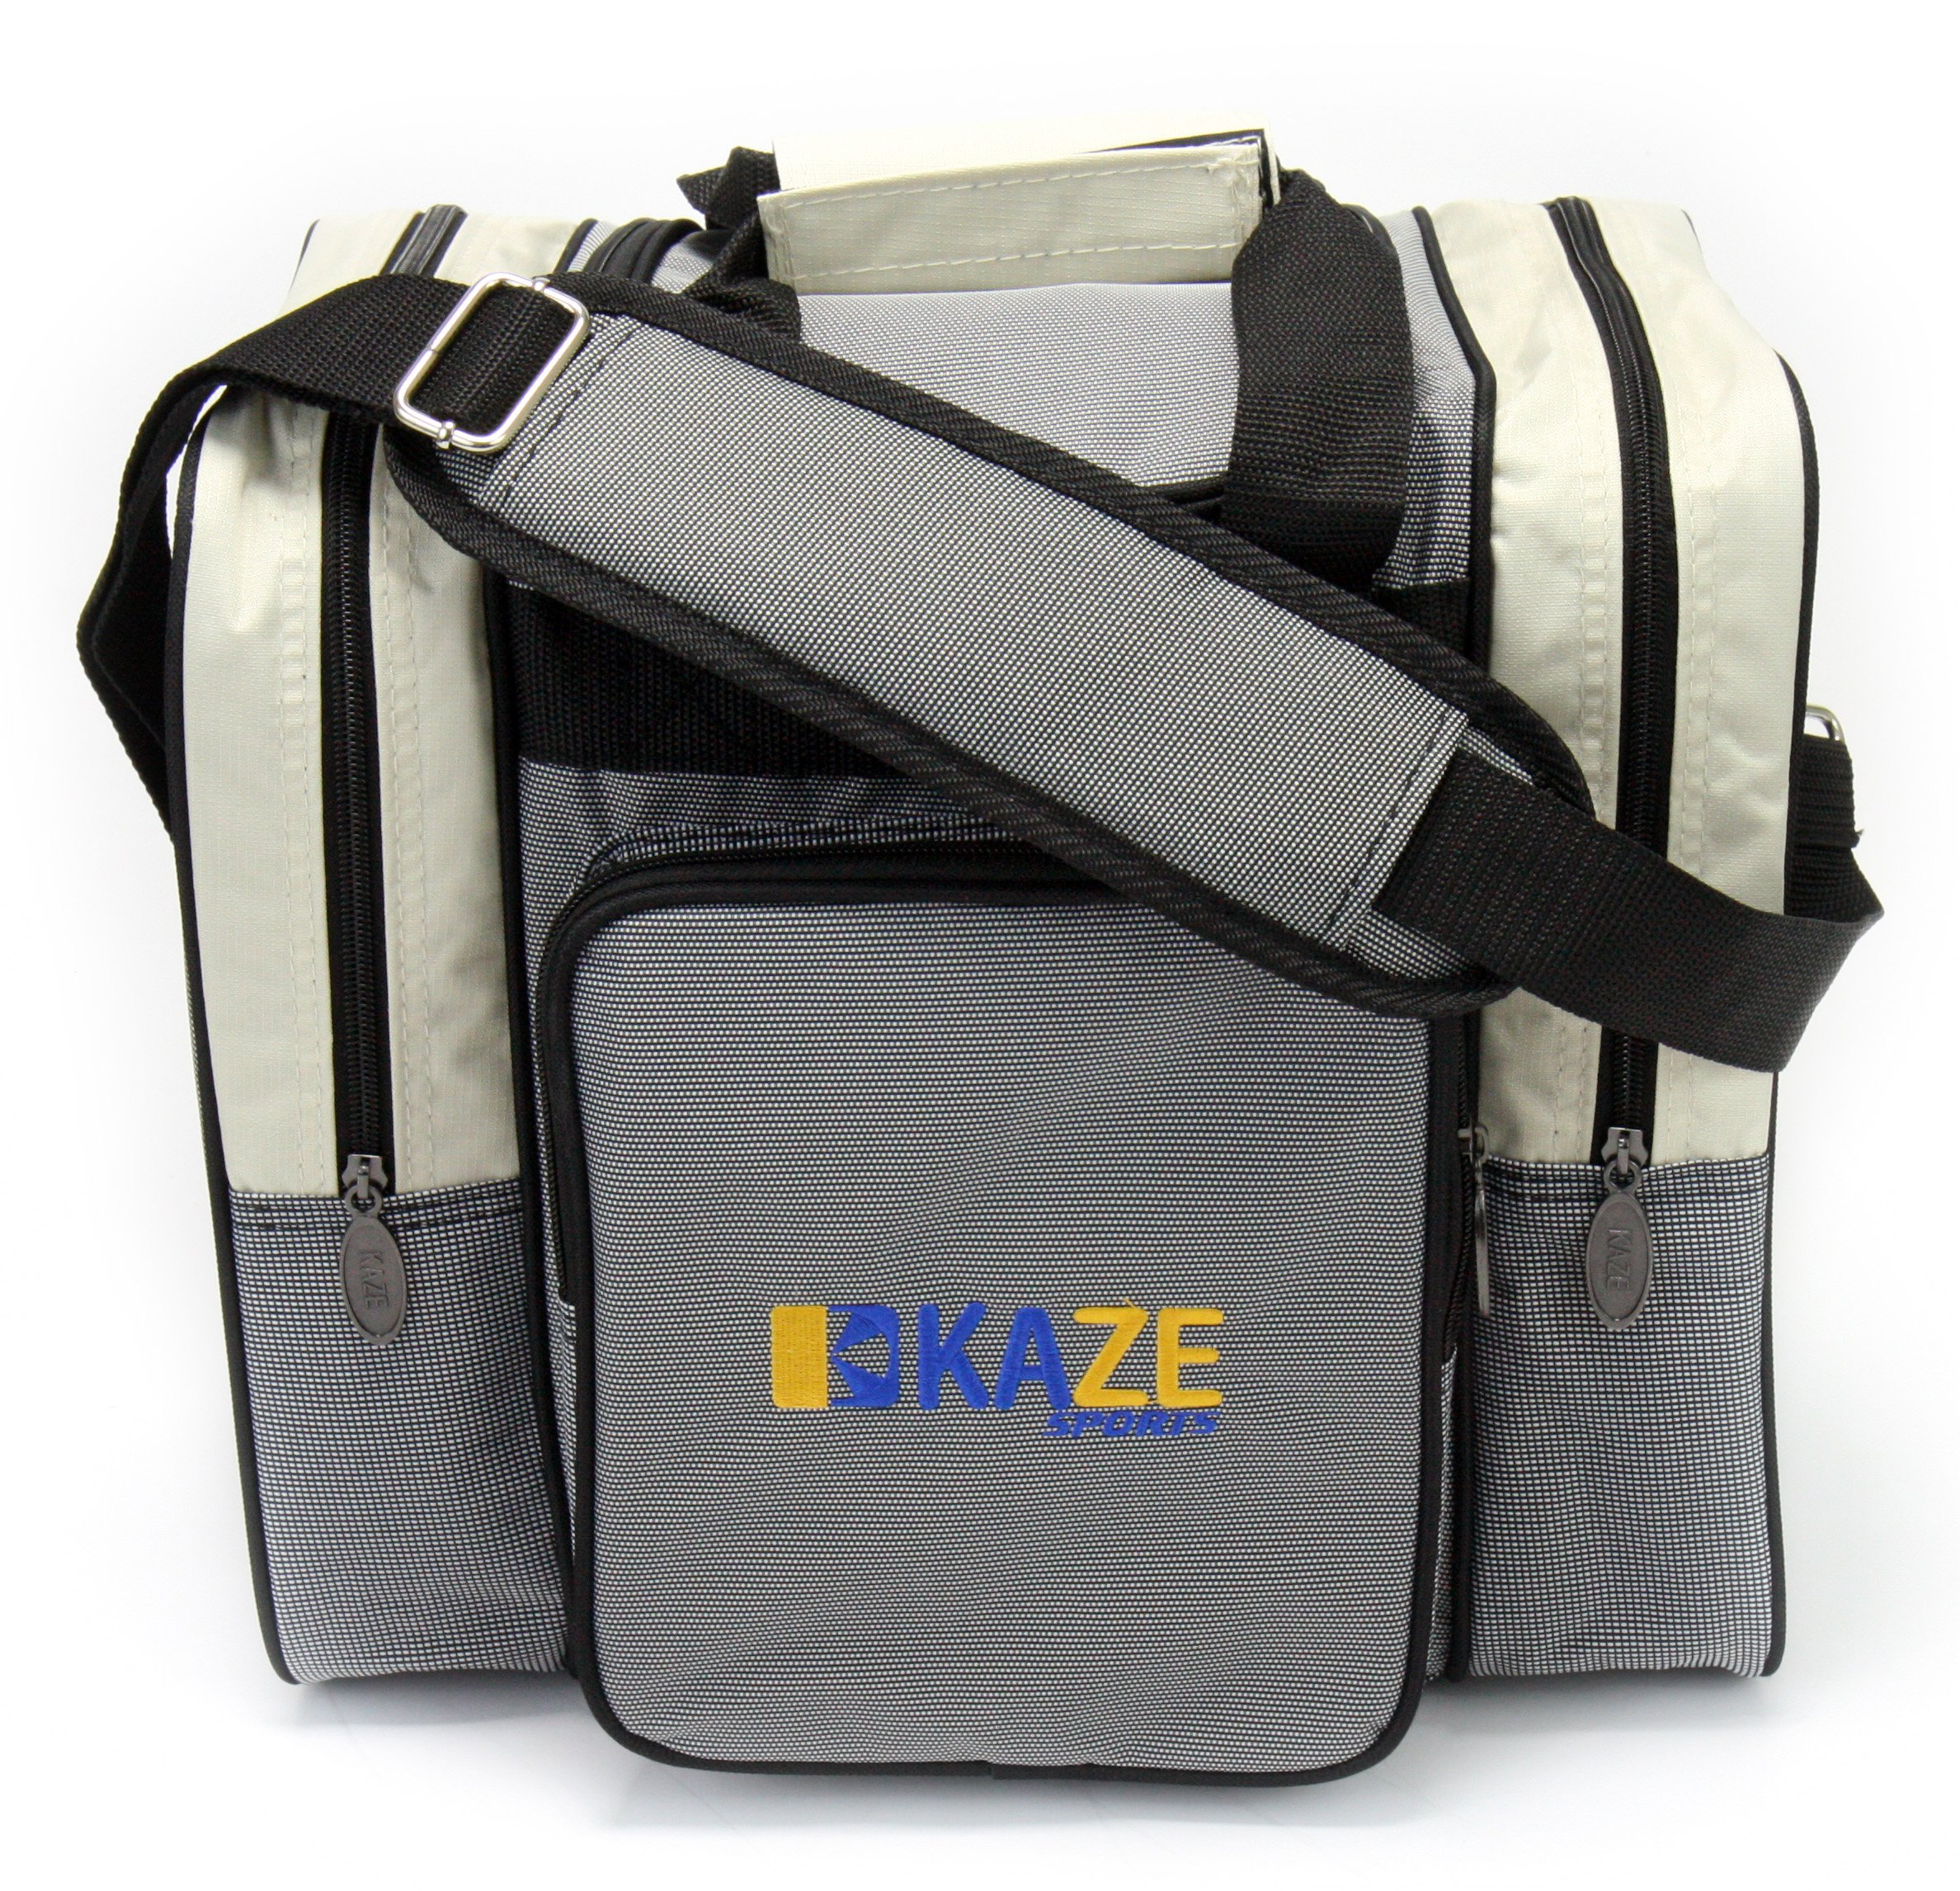 KAZE SPORTS Deluxe 1 Ball Bowling Tote with Two Side Pockets (Beige)